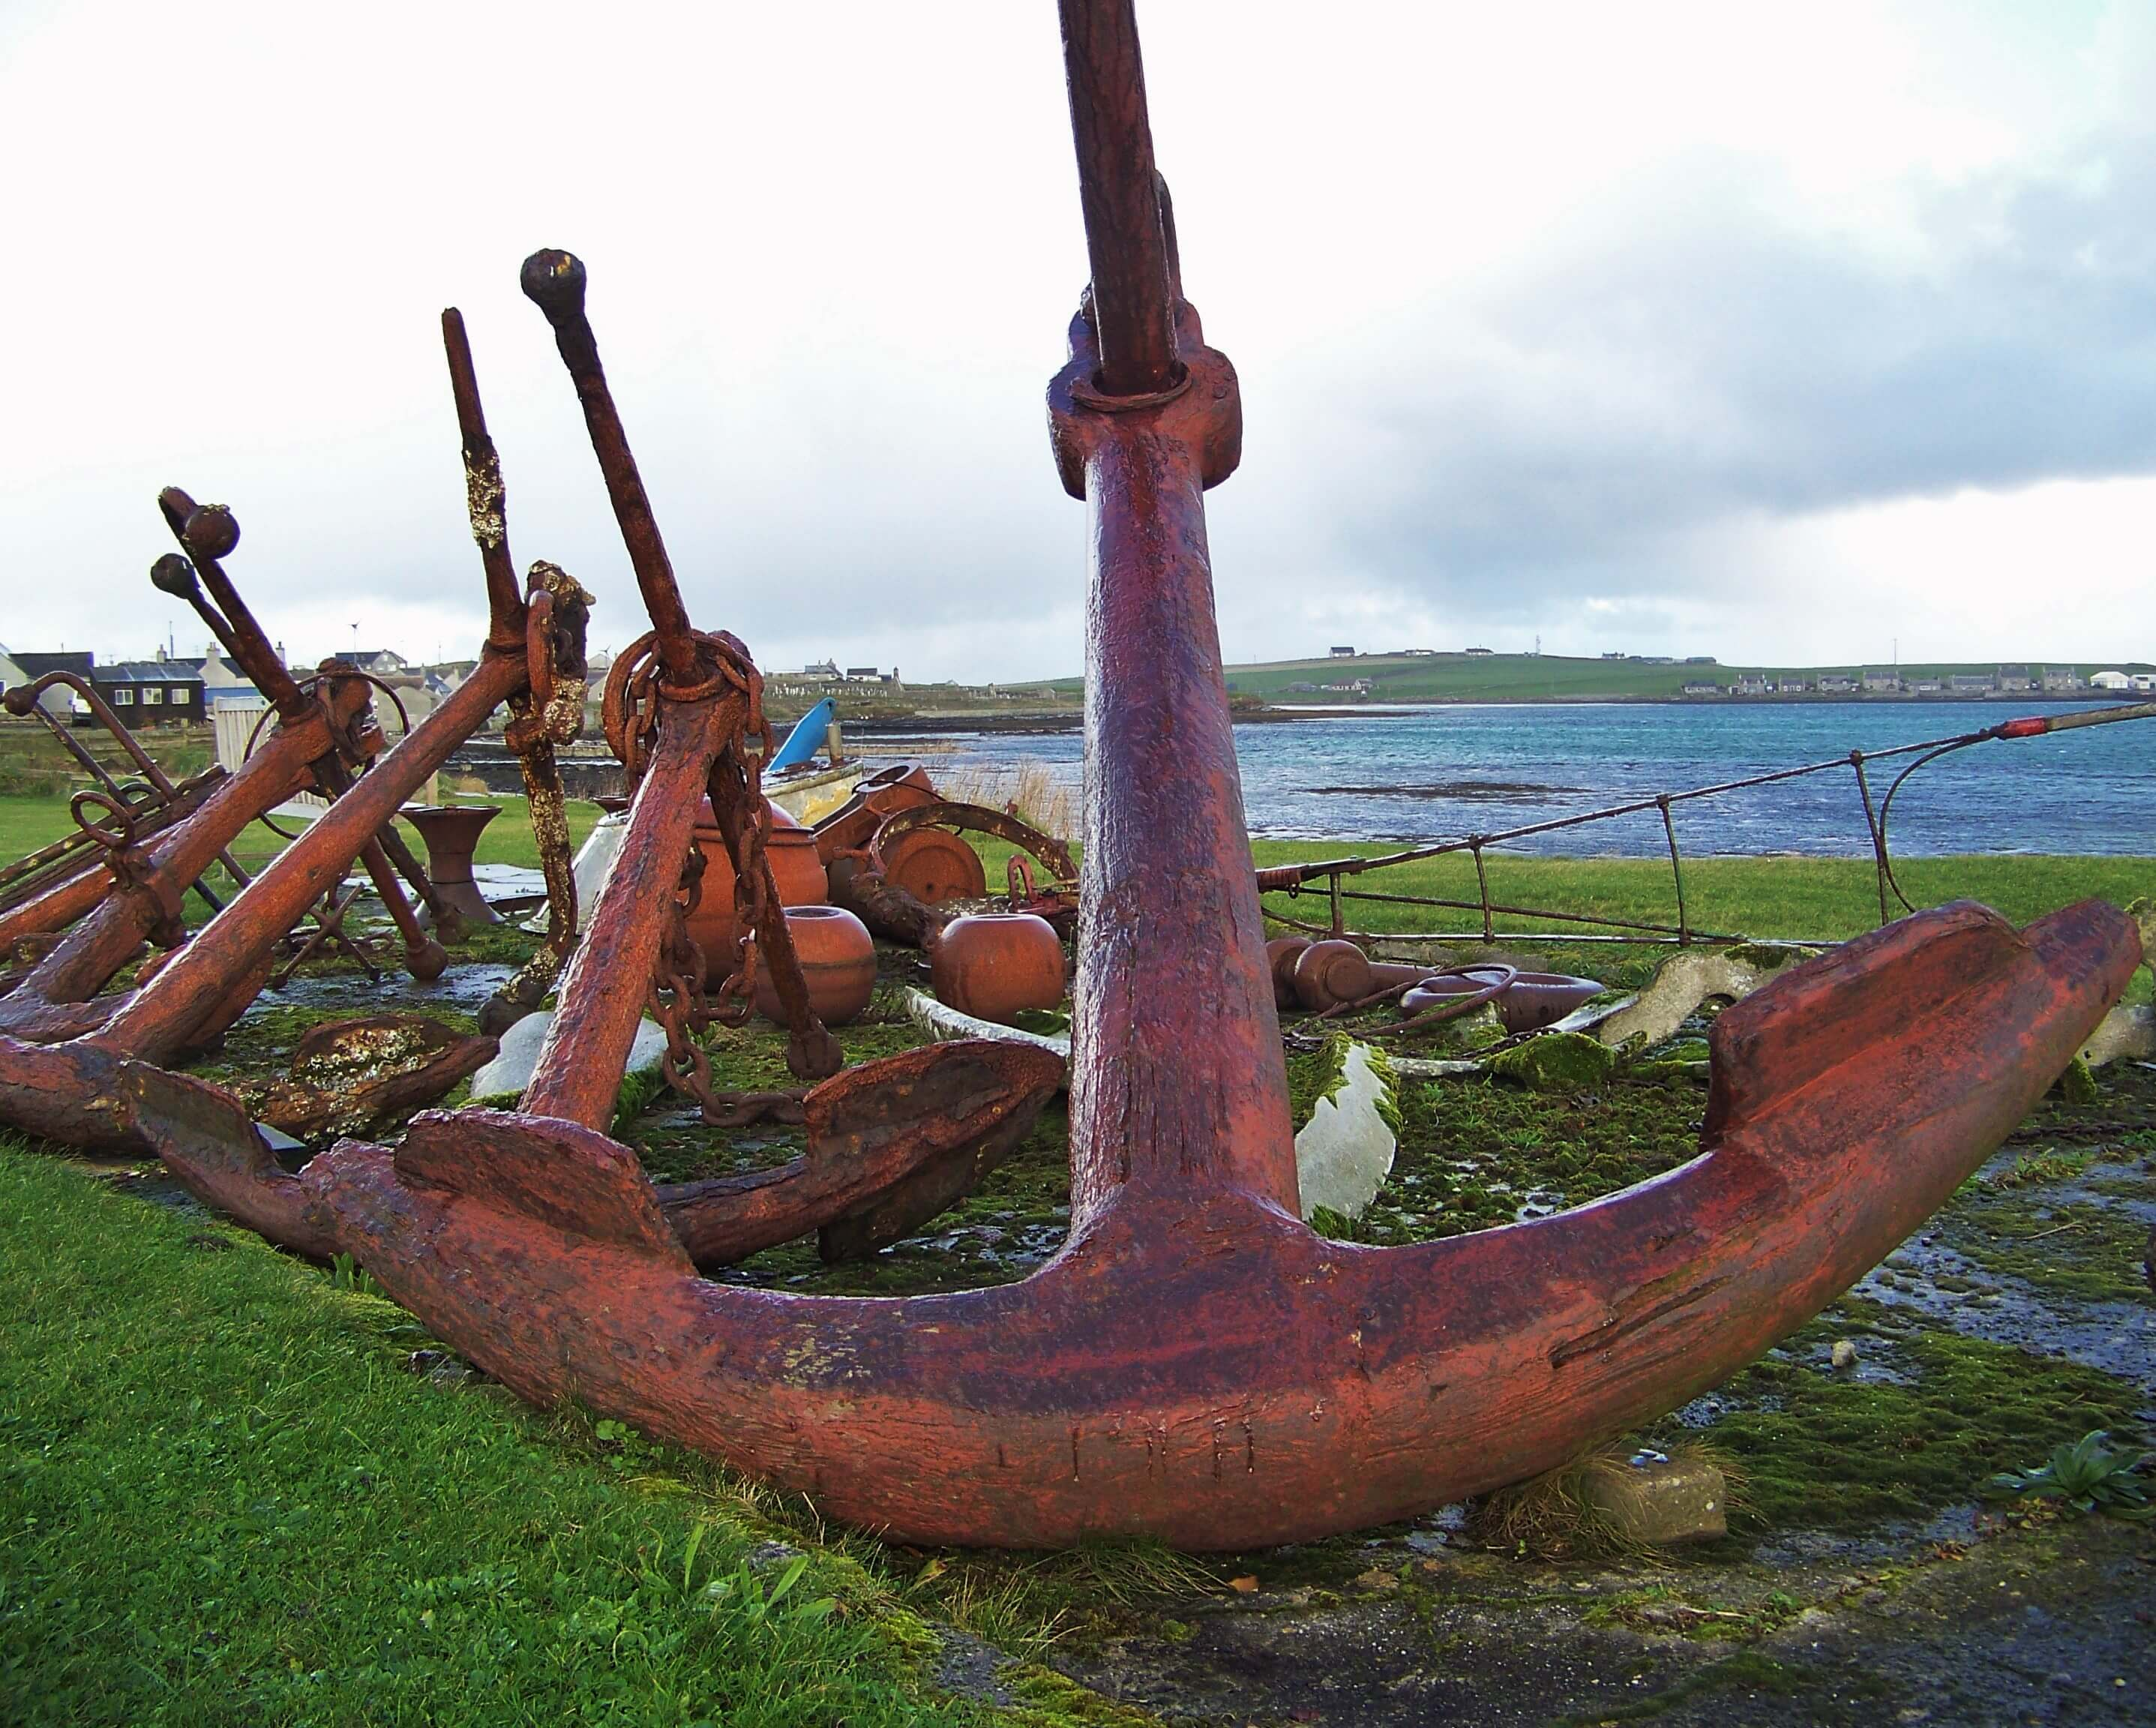 Old anchors in Pierowall on the Orkney island of Westray, Orkney, Scotland.